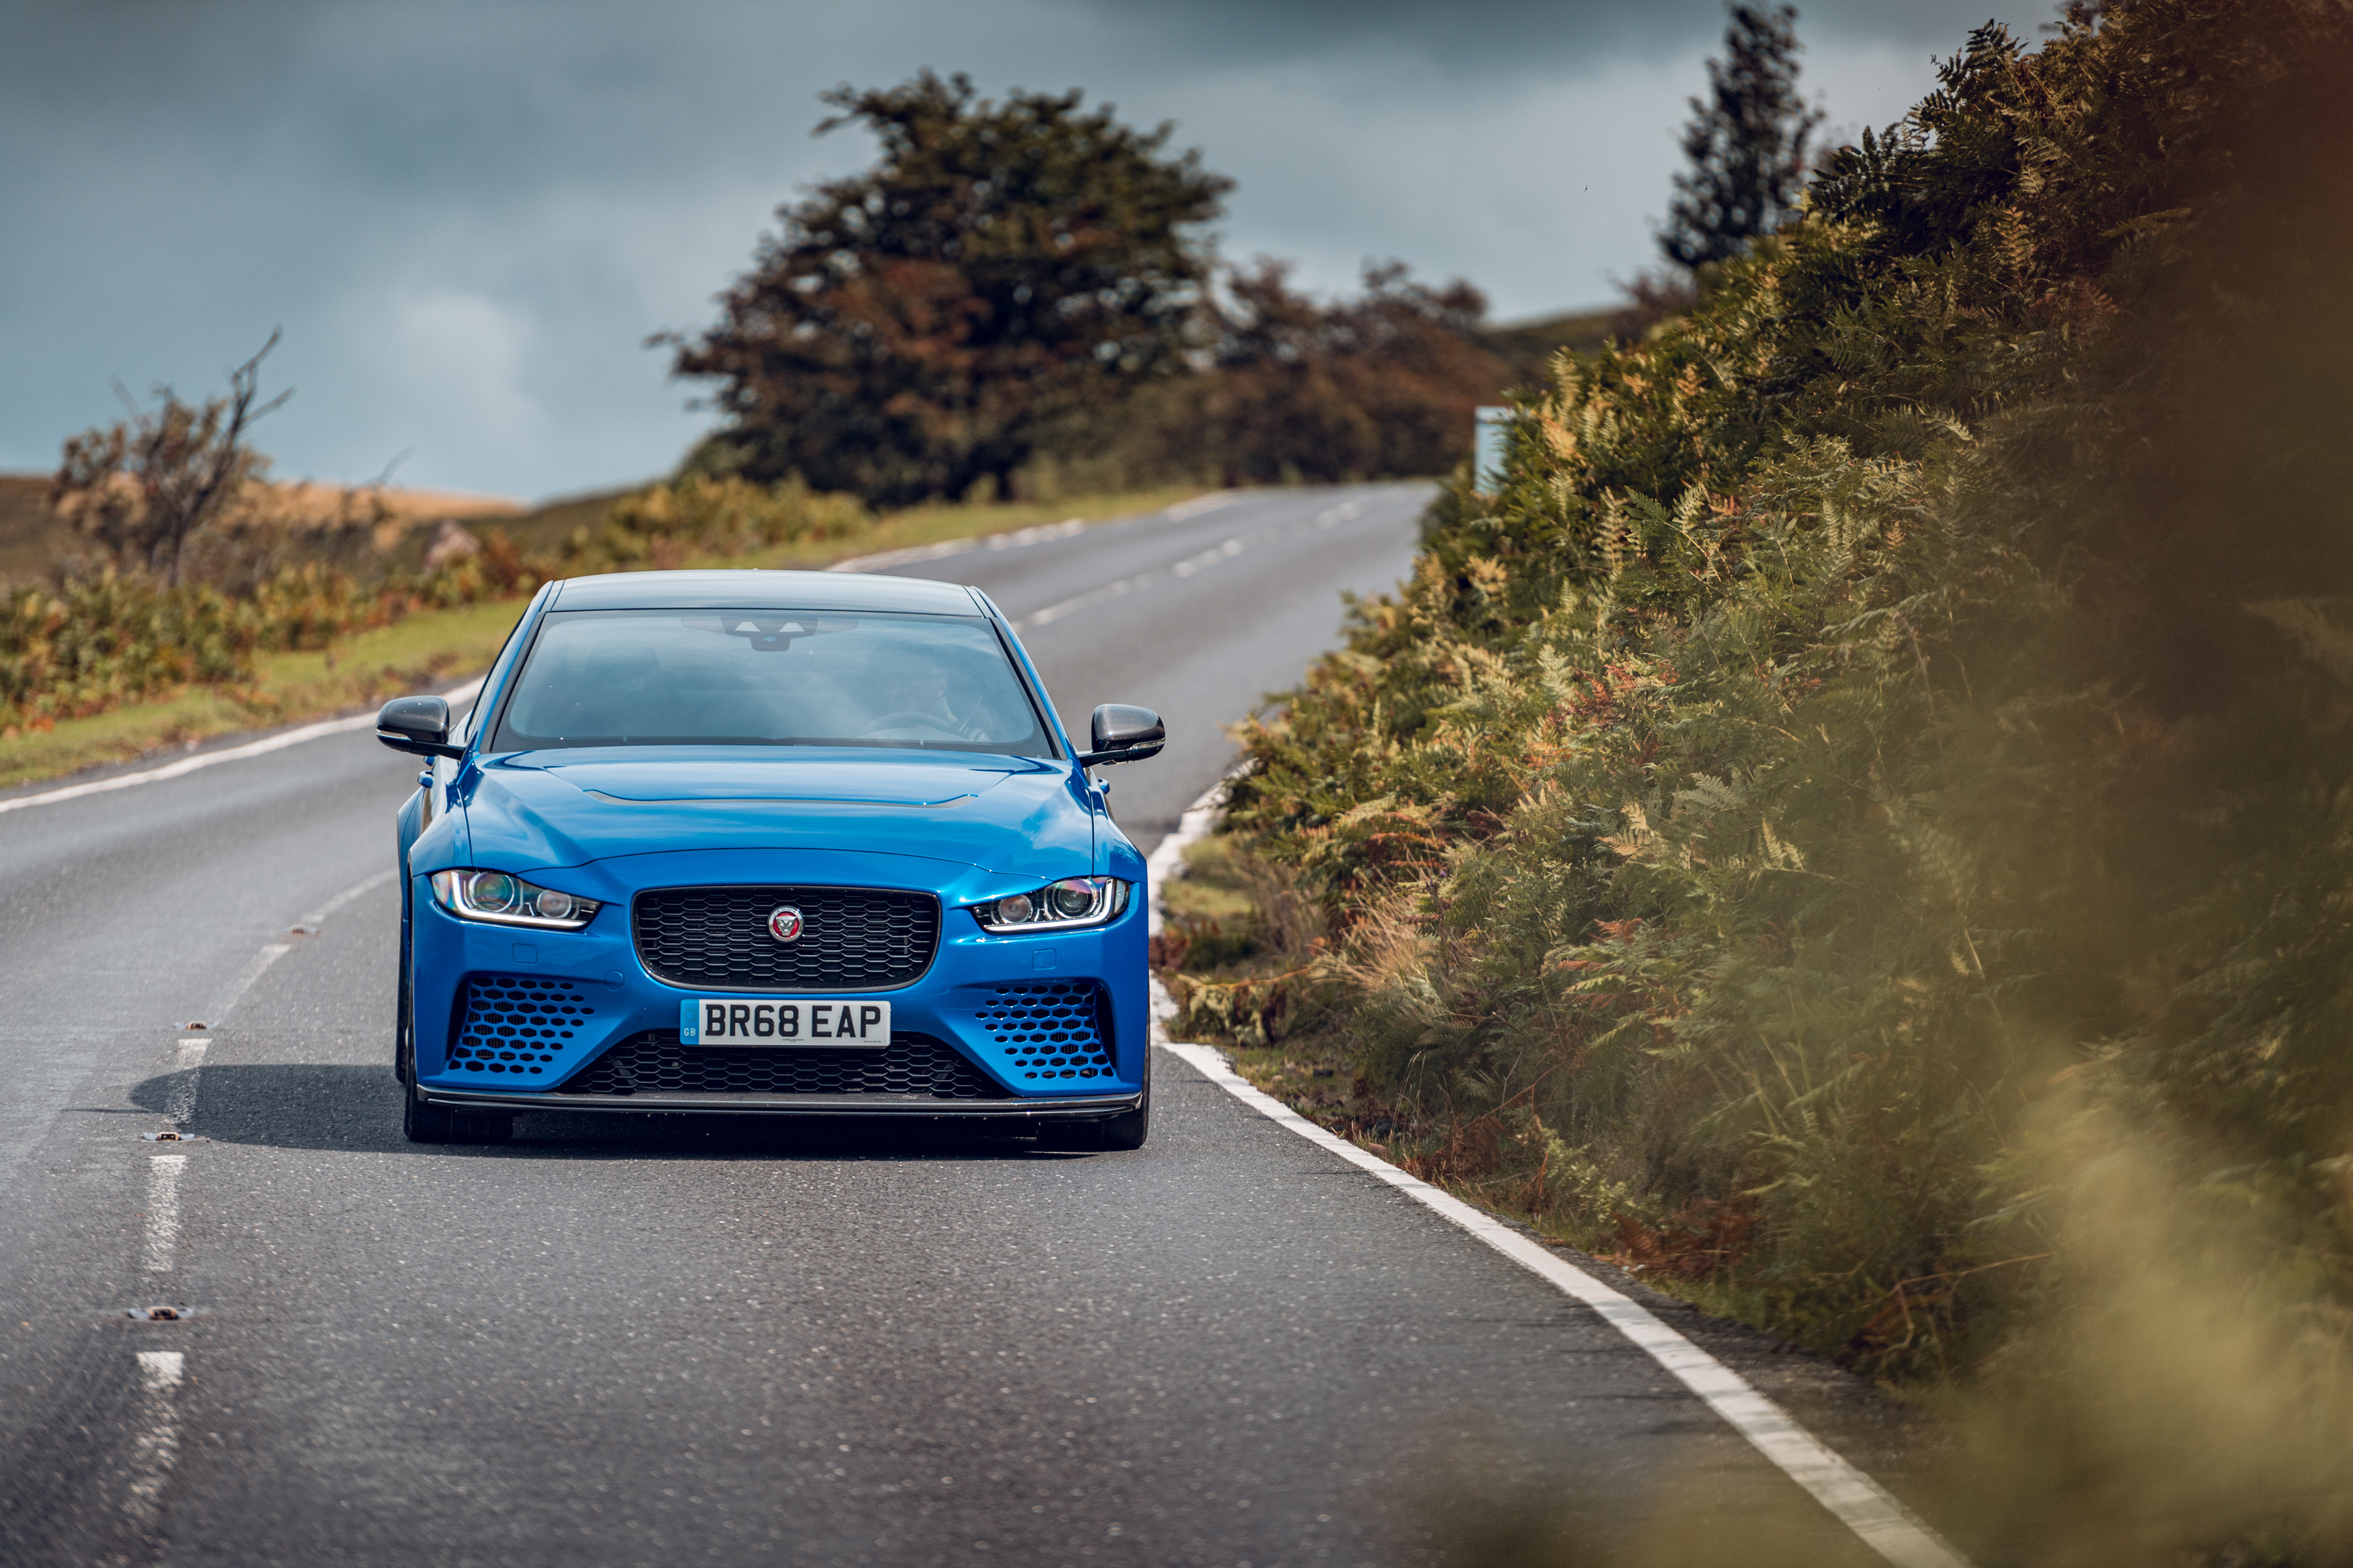 The Project 8 packs close to 600bhp